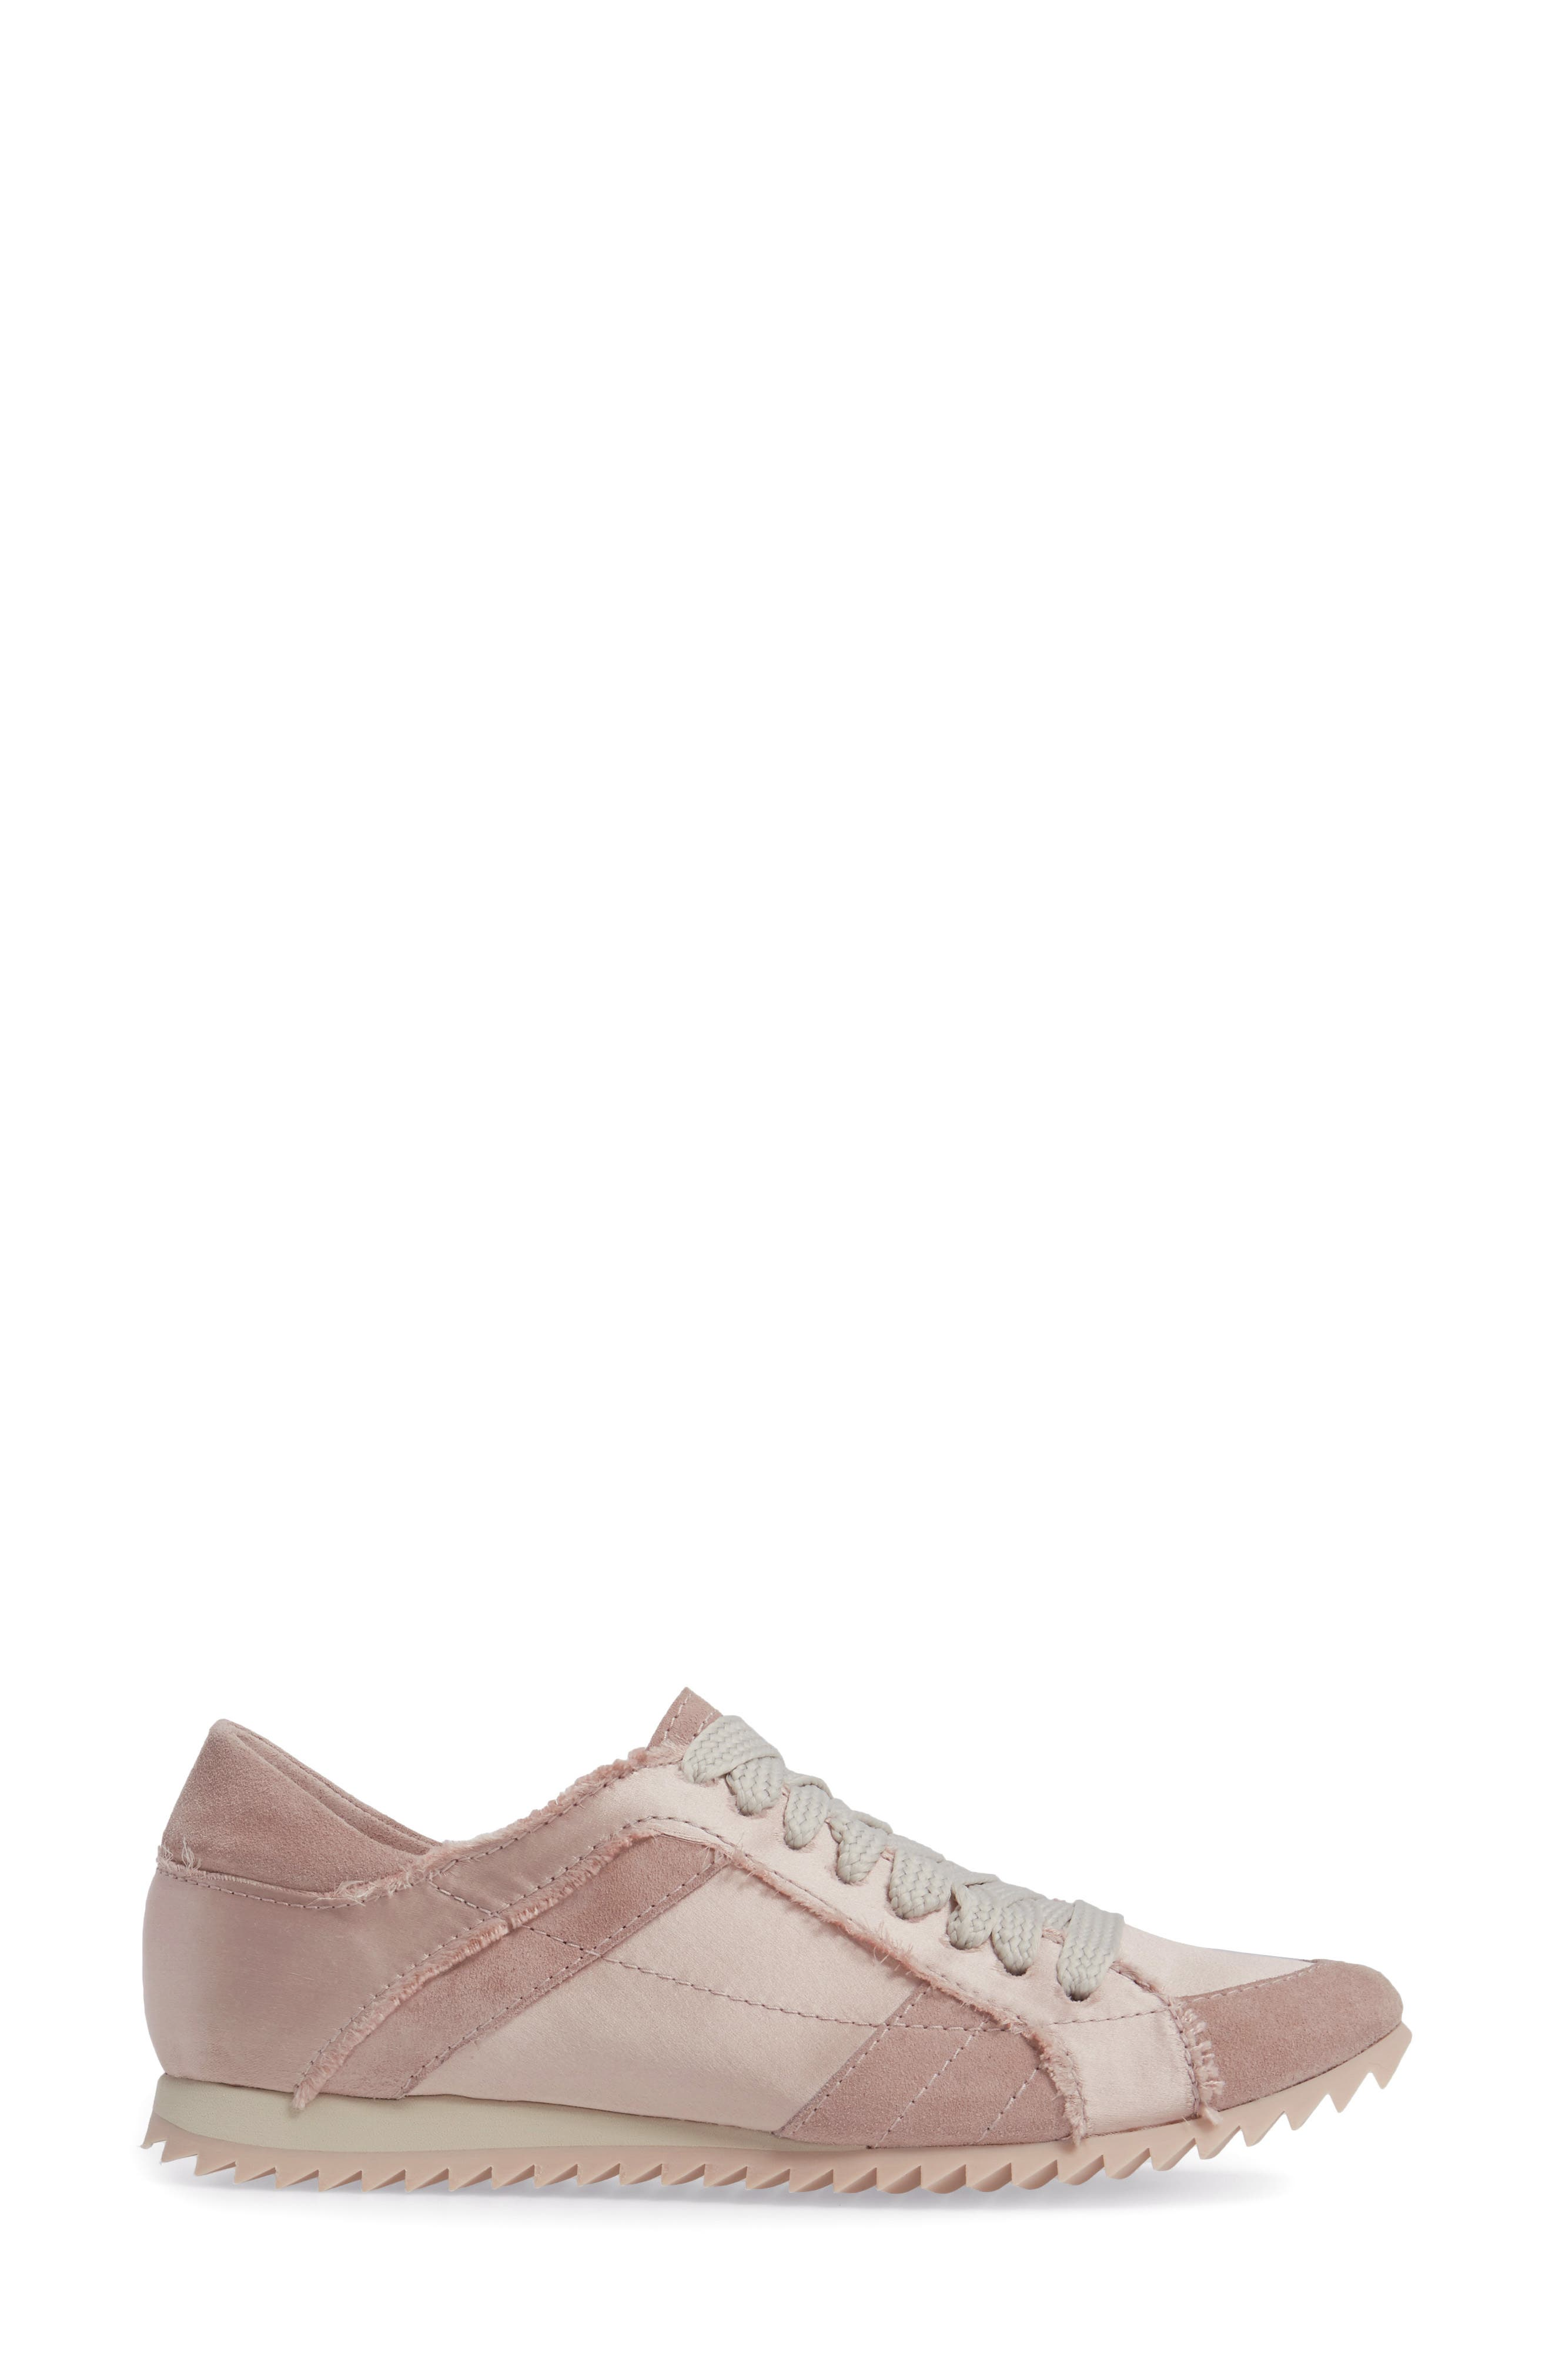 Cristina Trainer Sneaker,                             Alternate thumbnail 3, color,                             Light Pink Satin